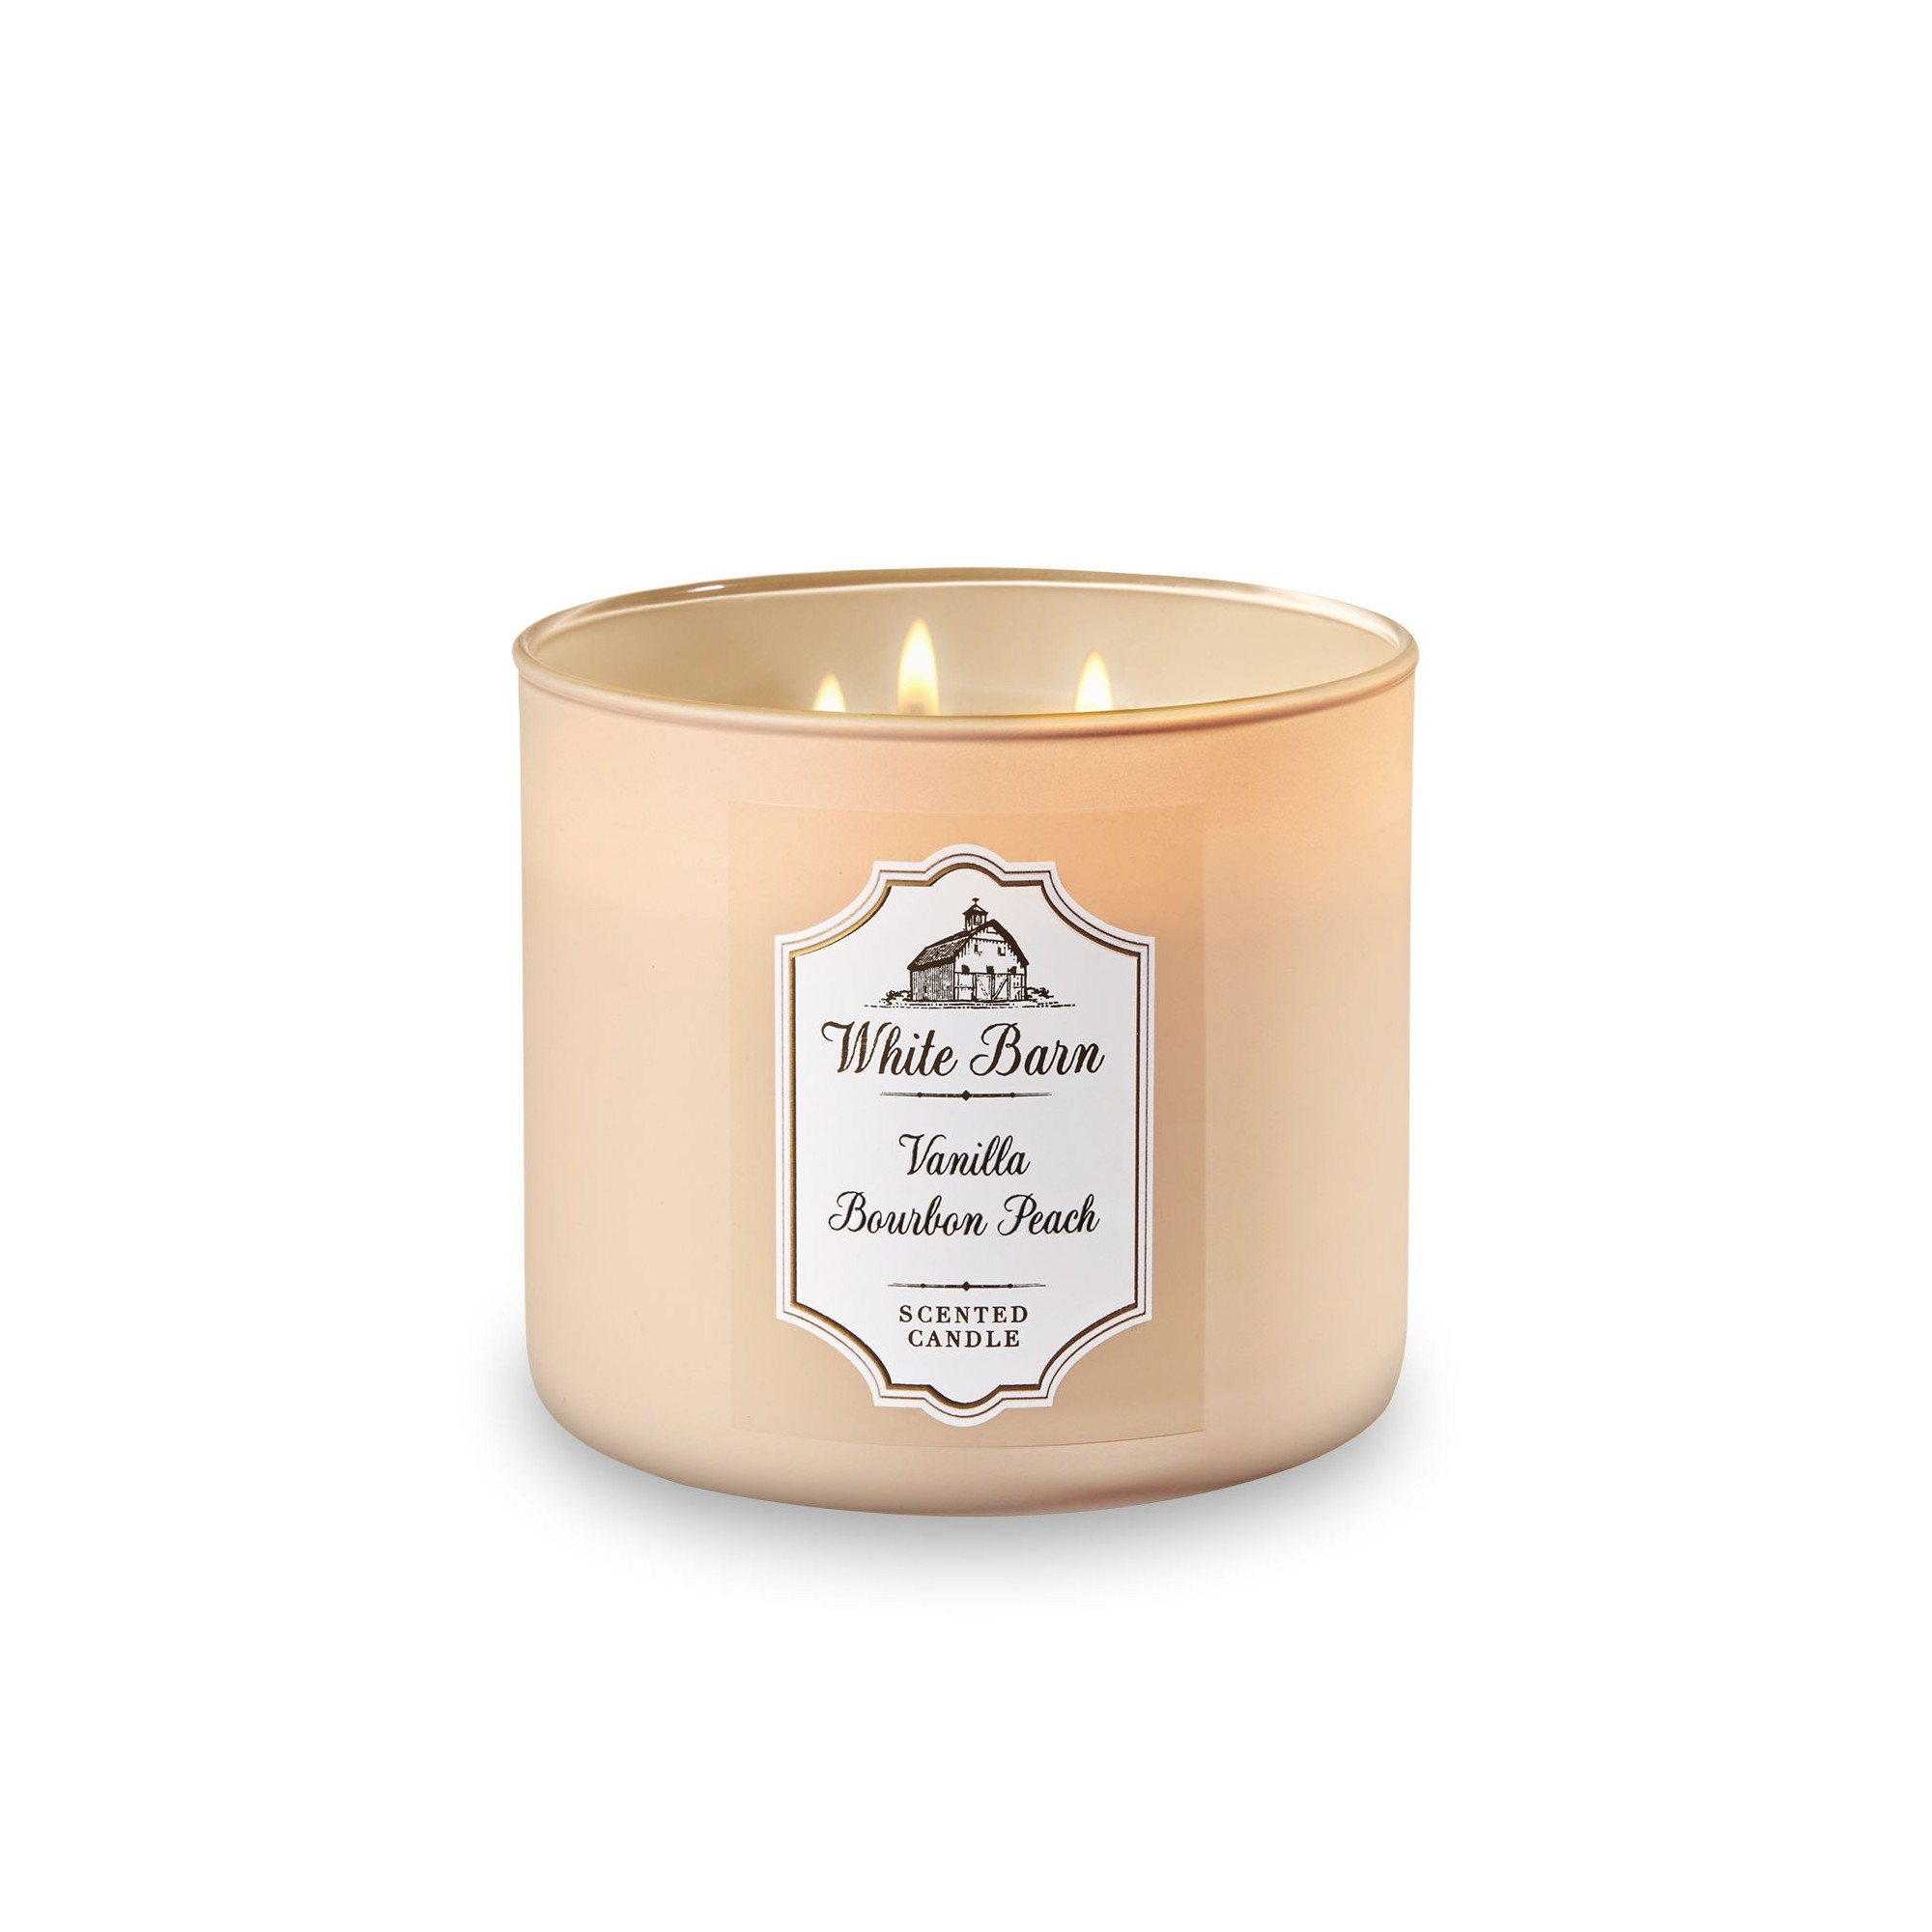 Bath & Body Works White Barn Vanilla Bourbon Peach 3 Wick Scented Candle